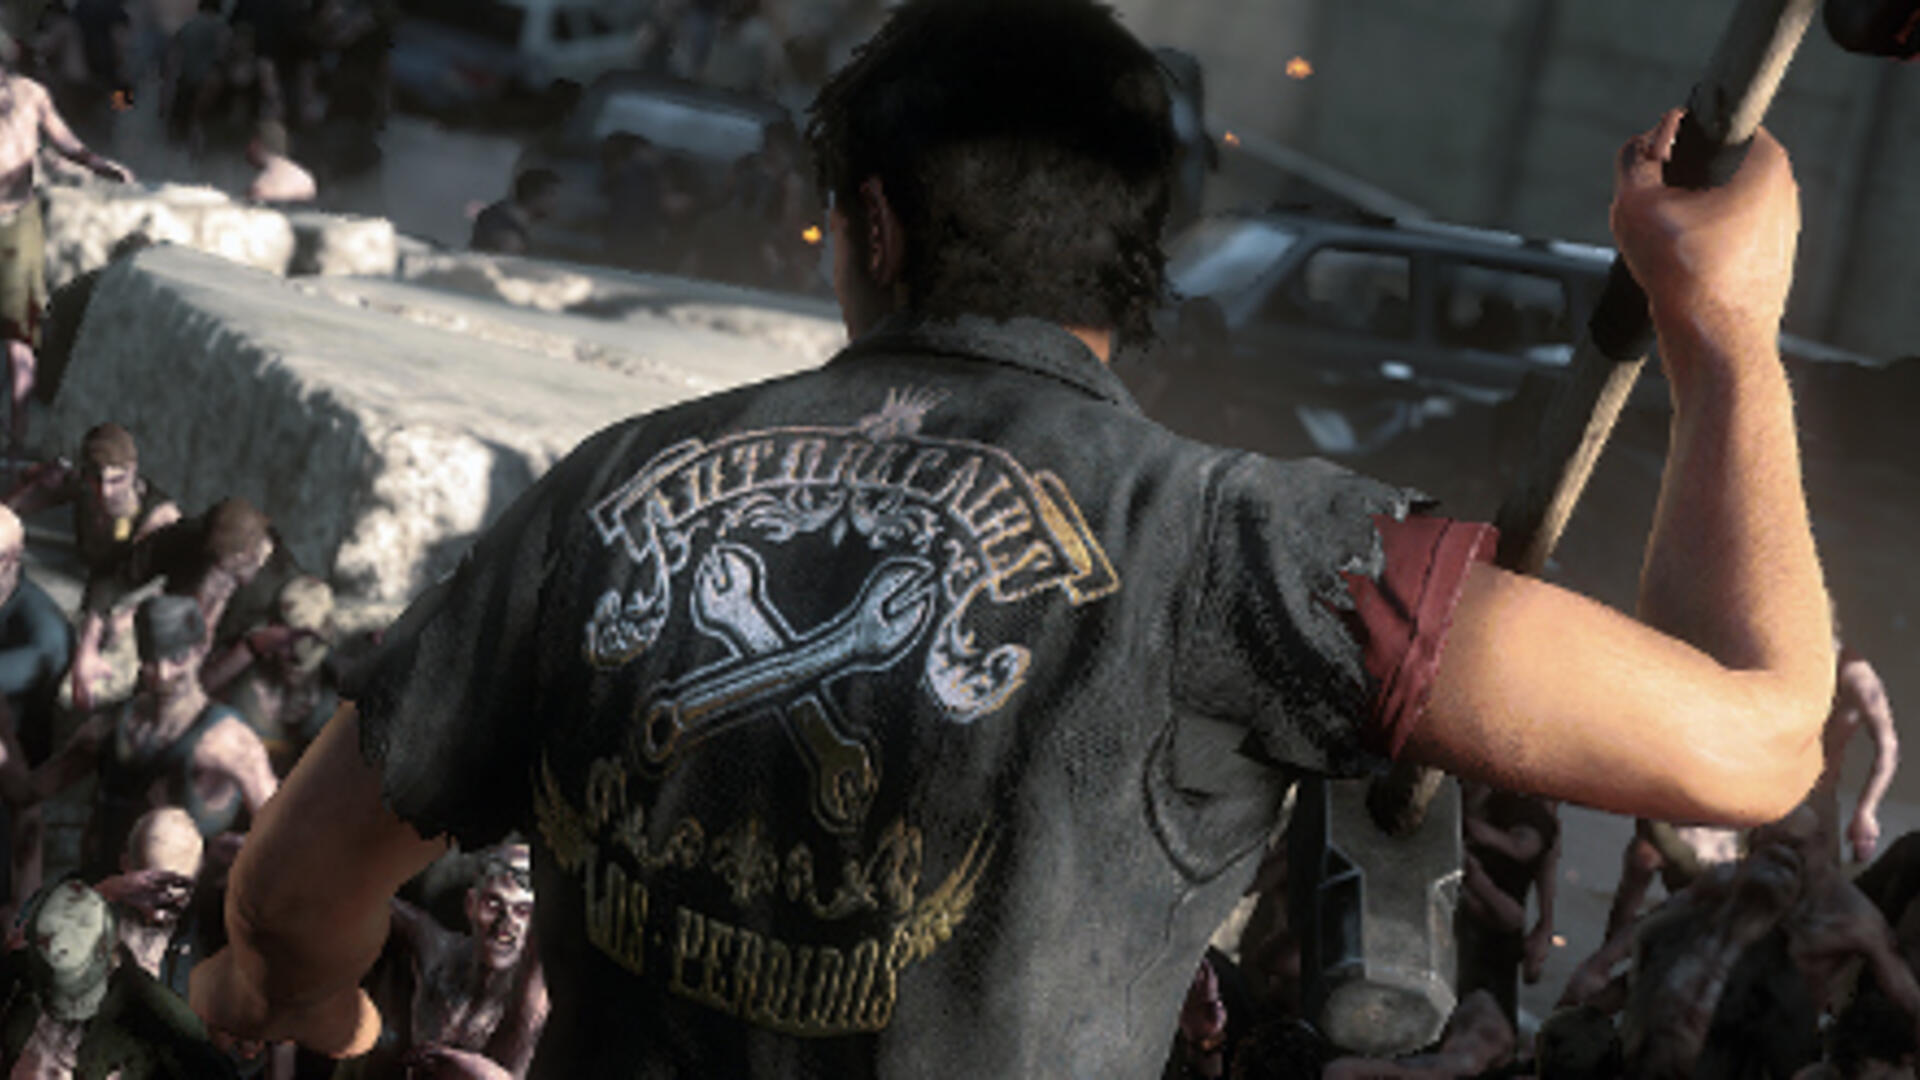 Dead Rising 3 PC Review: I'd Rather Play the Xbox One Version